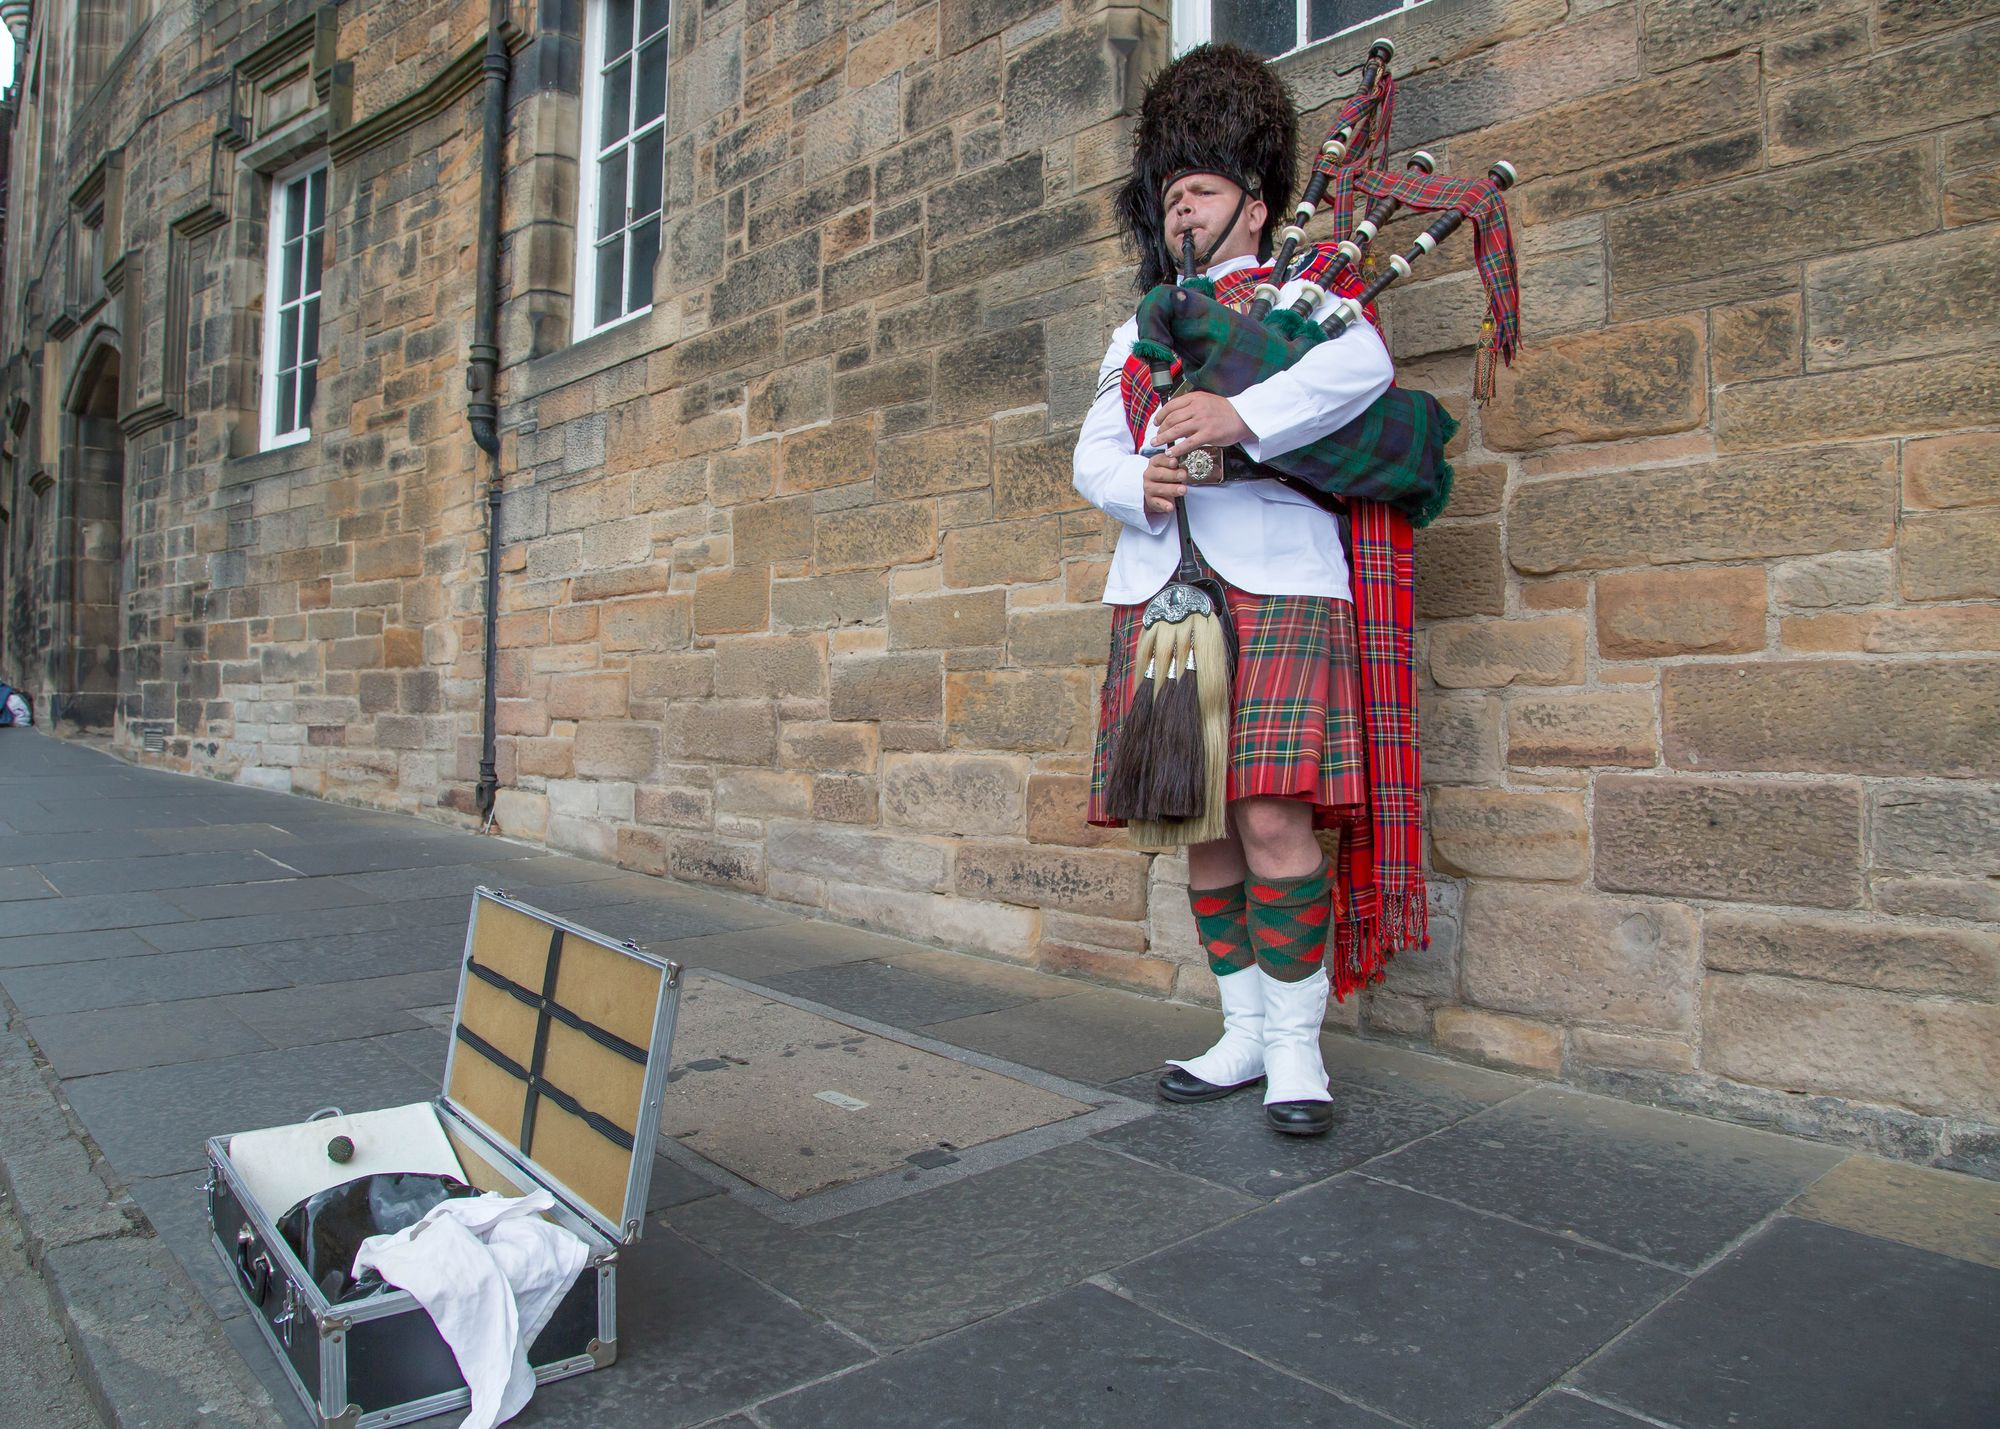 A man plays the bagpipes on the Royal Mile in Edinburgh